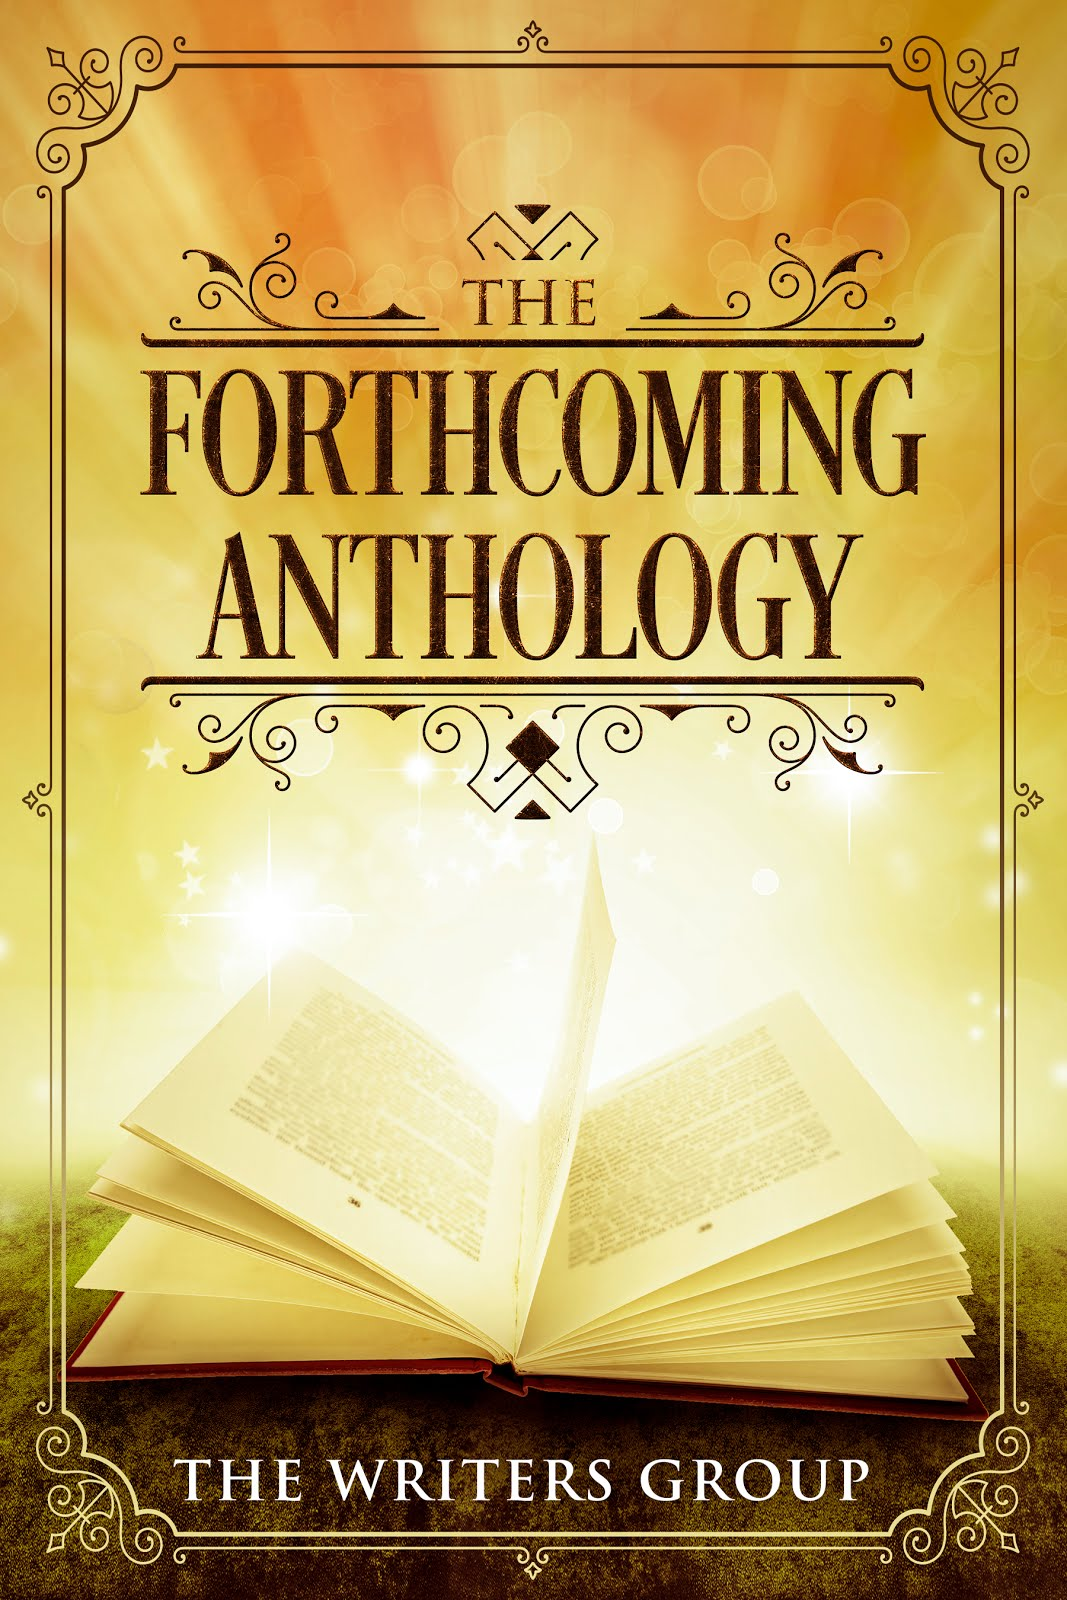 The ForthComing Anthology